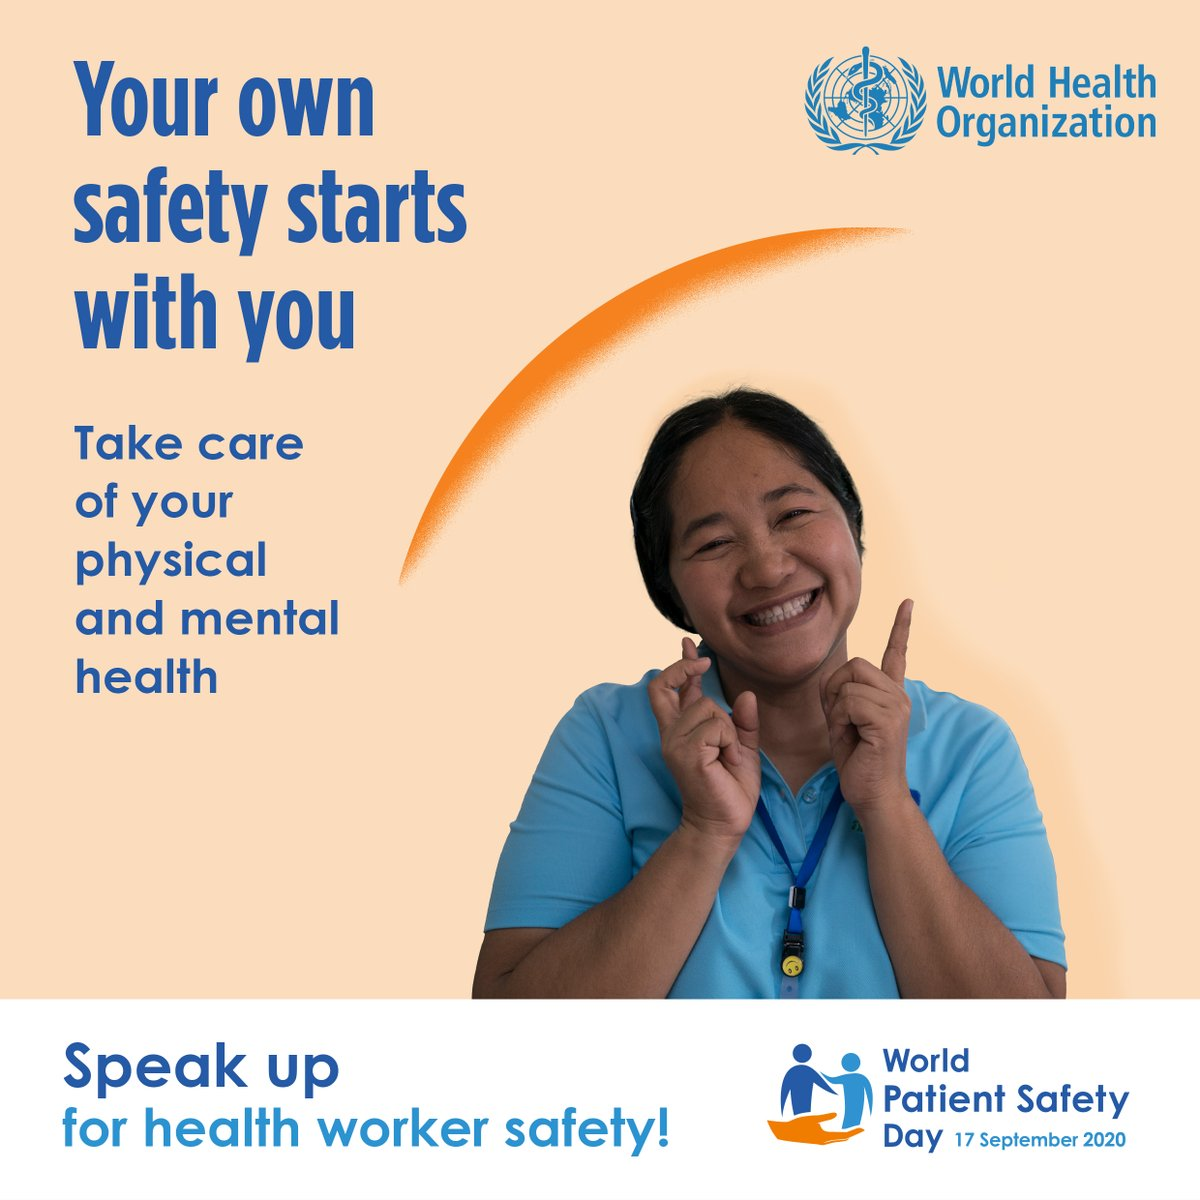 #Healthworkersafety is a priority for #patient safety. Speak up for #health worker safety  Safe health workers, Safe patients!  Watch @WHO https://t.co/pCm14Lnhfi  #worldpatientsafetyday2020 #PatientSafety #healthcareworkers  #PPE #thankyouNHS #globalchange #HealthCareMatters https://t.co/oGE6aSpqu4